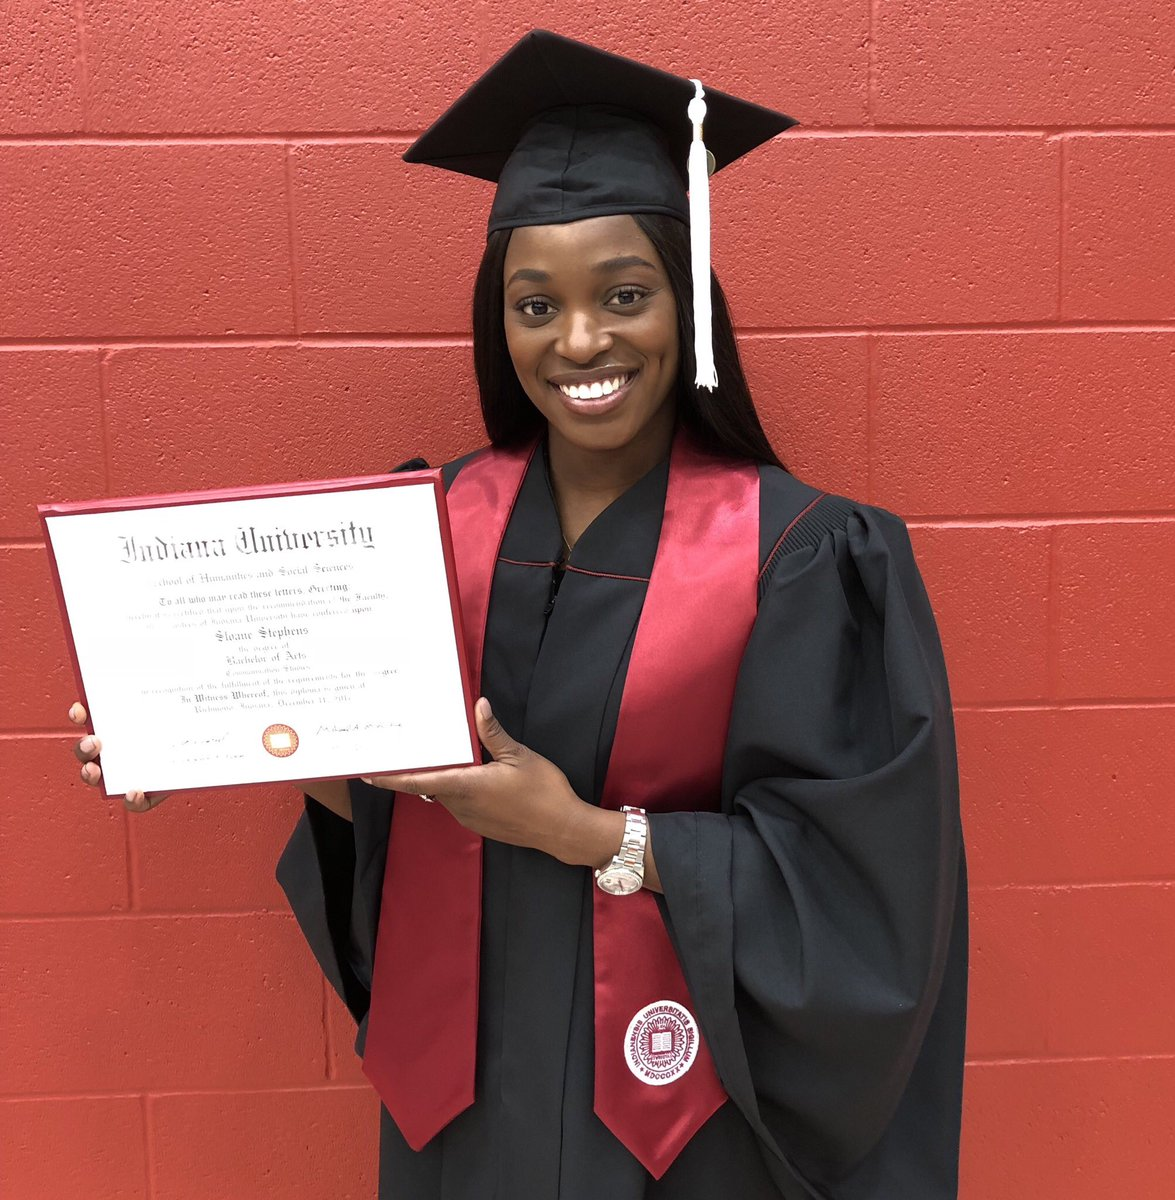 RT @SloaneStephens: Indiana University East Class of 2017 🎓♥️ Made my grandparents proud this morning! https://t.co/nZKeH7CgpV